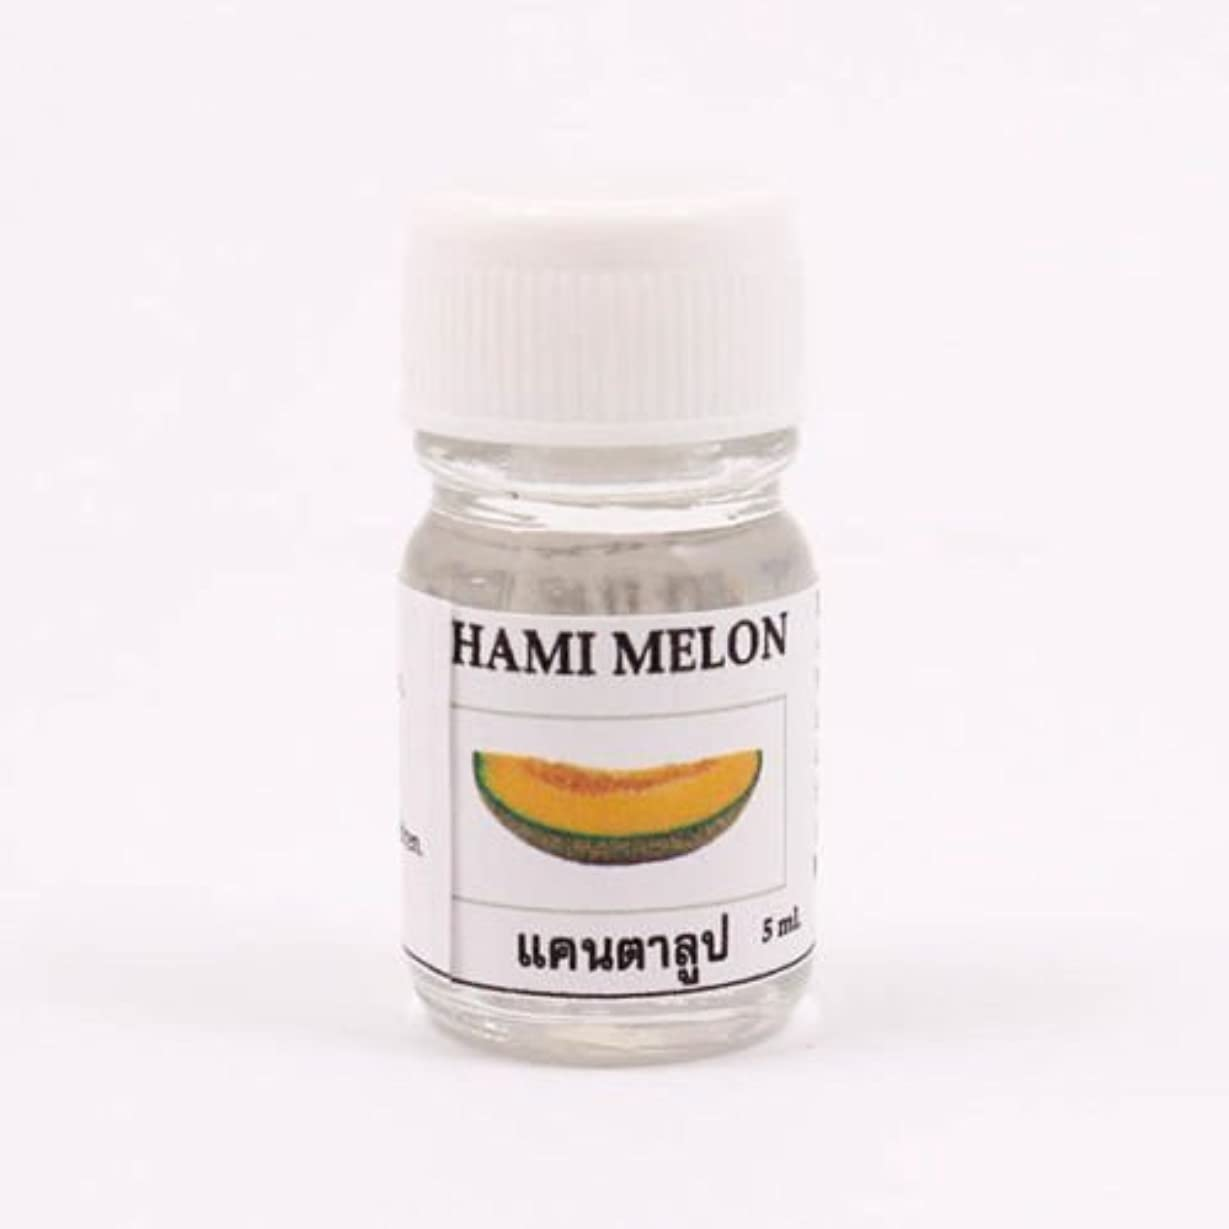 窒息させるポイント機動6X Hami Melon Aroma Fragrance Essential Oil 5ML cc Diffuser Burner Therapy